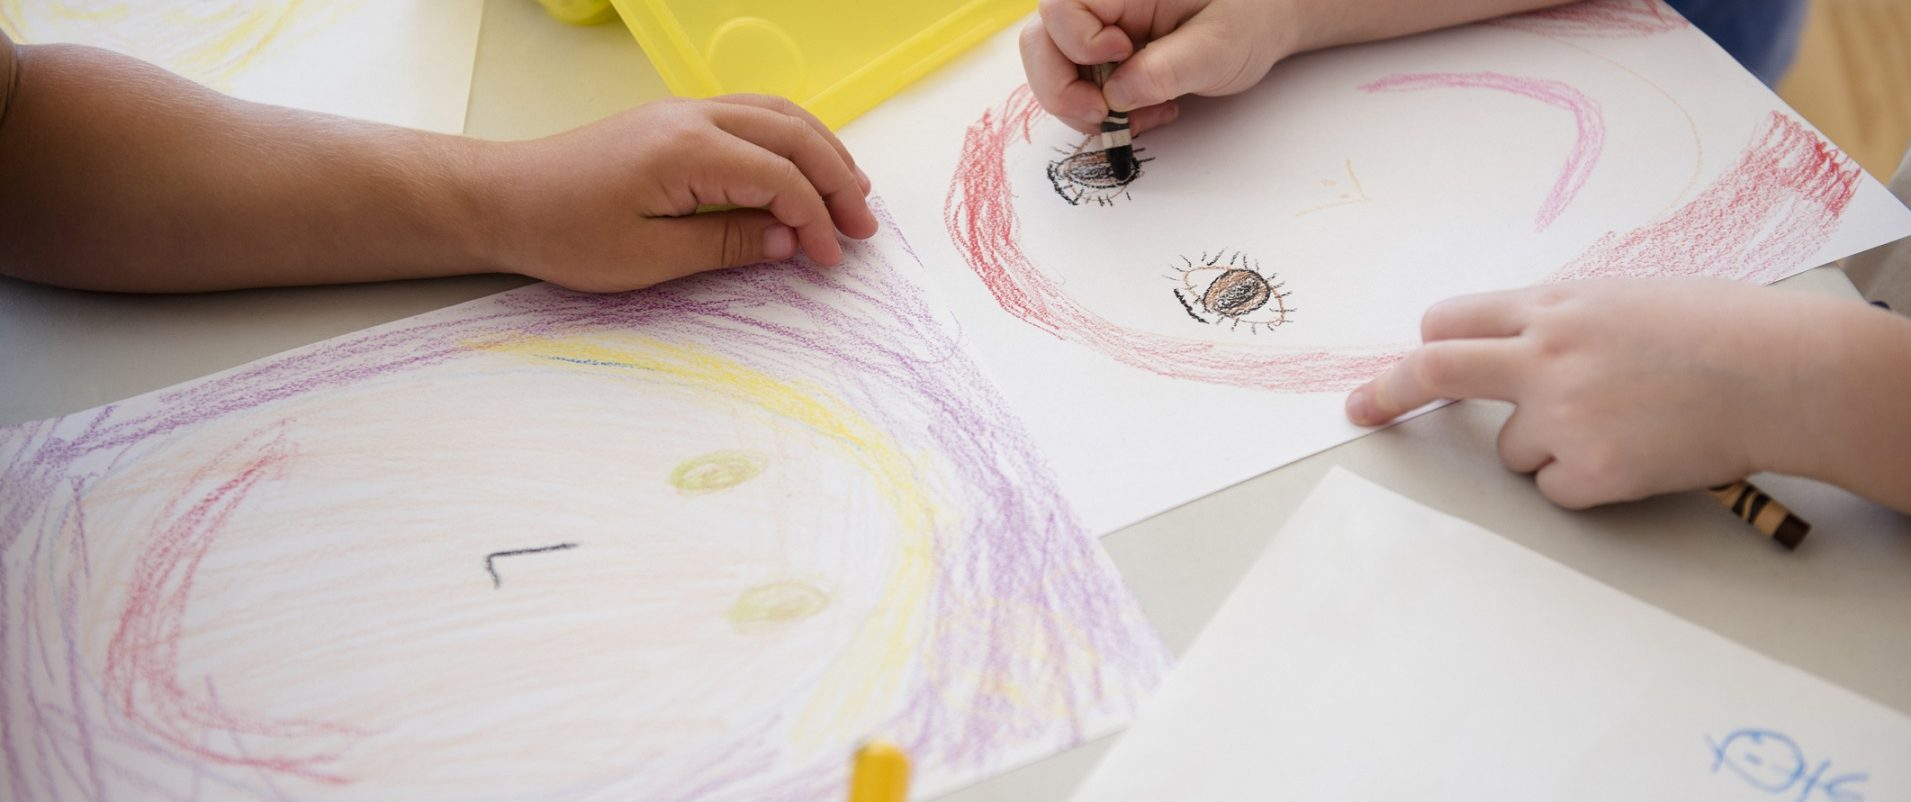 Young children drawing with crayons on paper in a classroom.